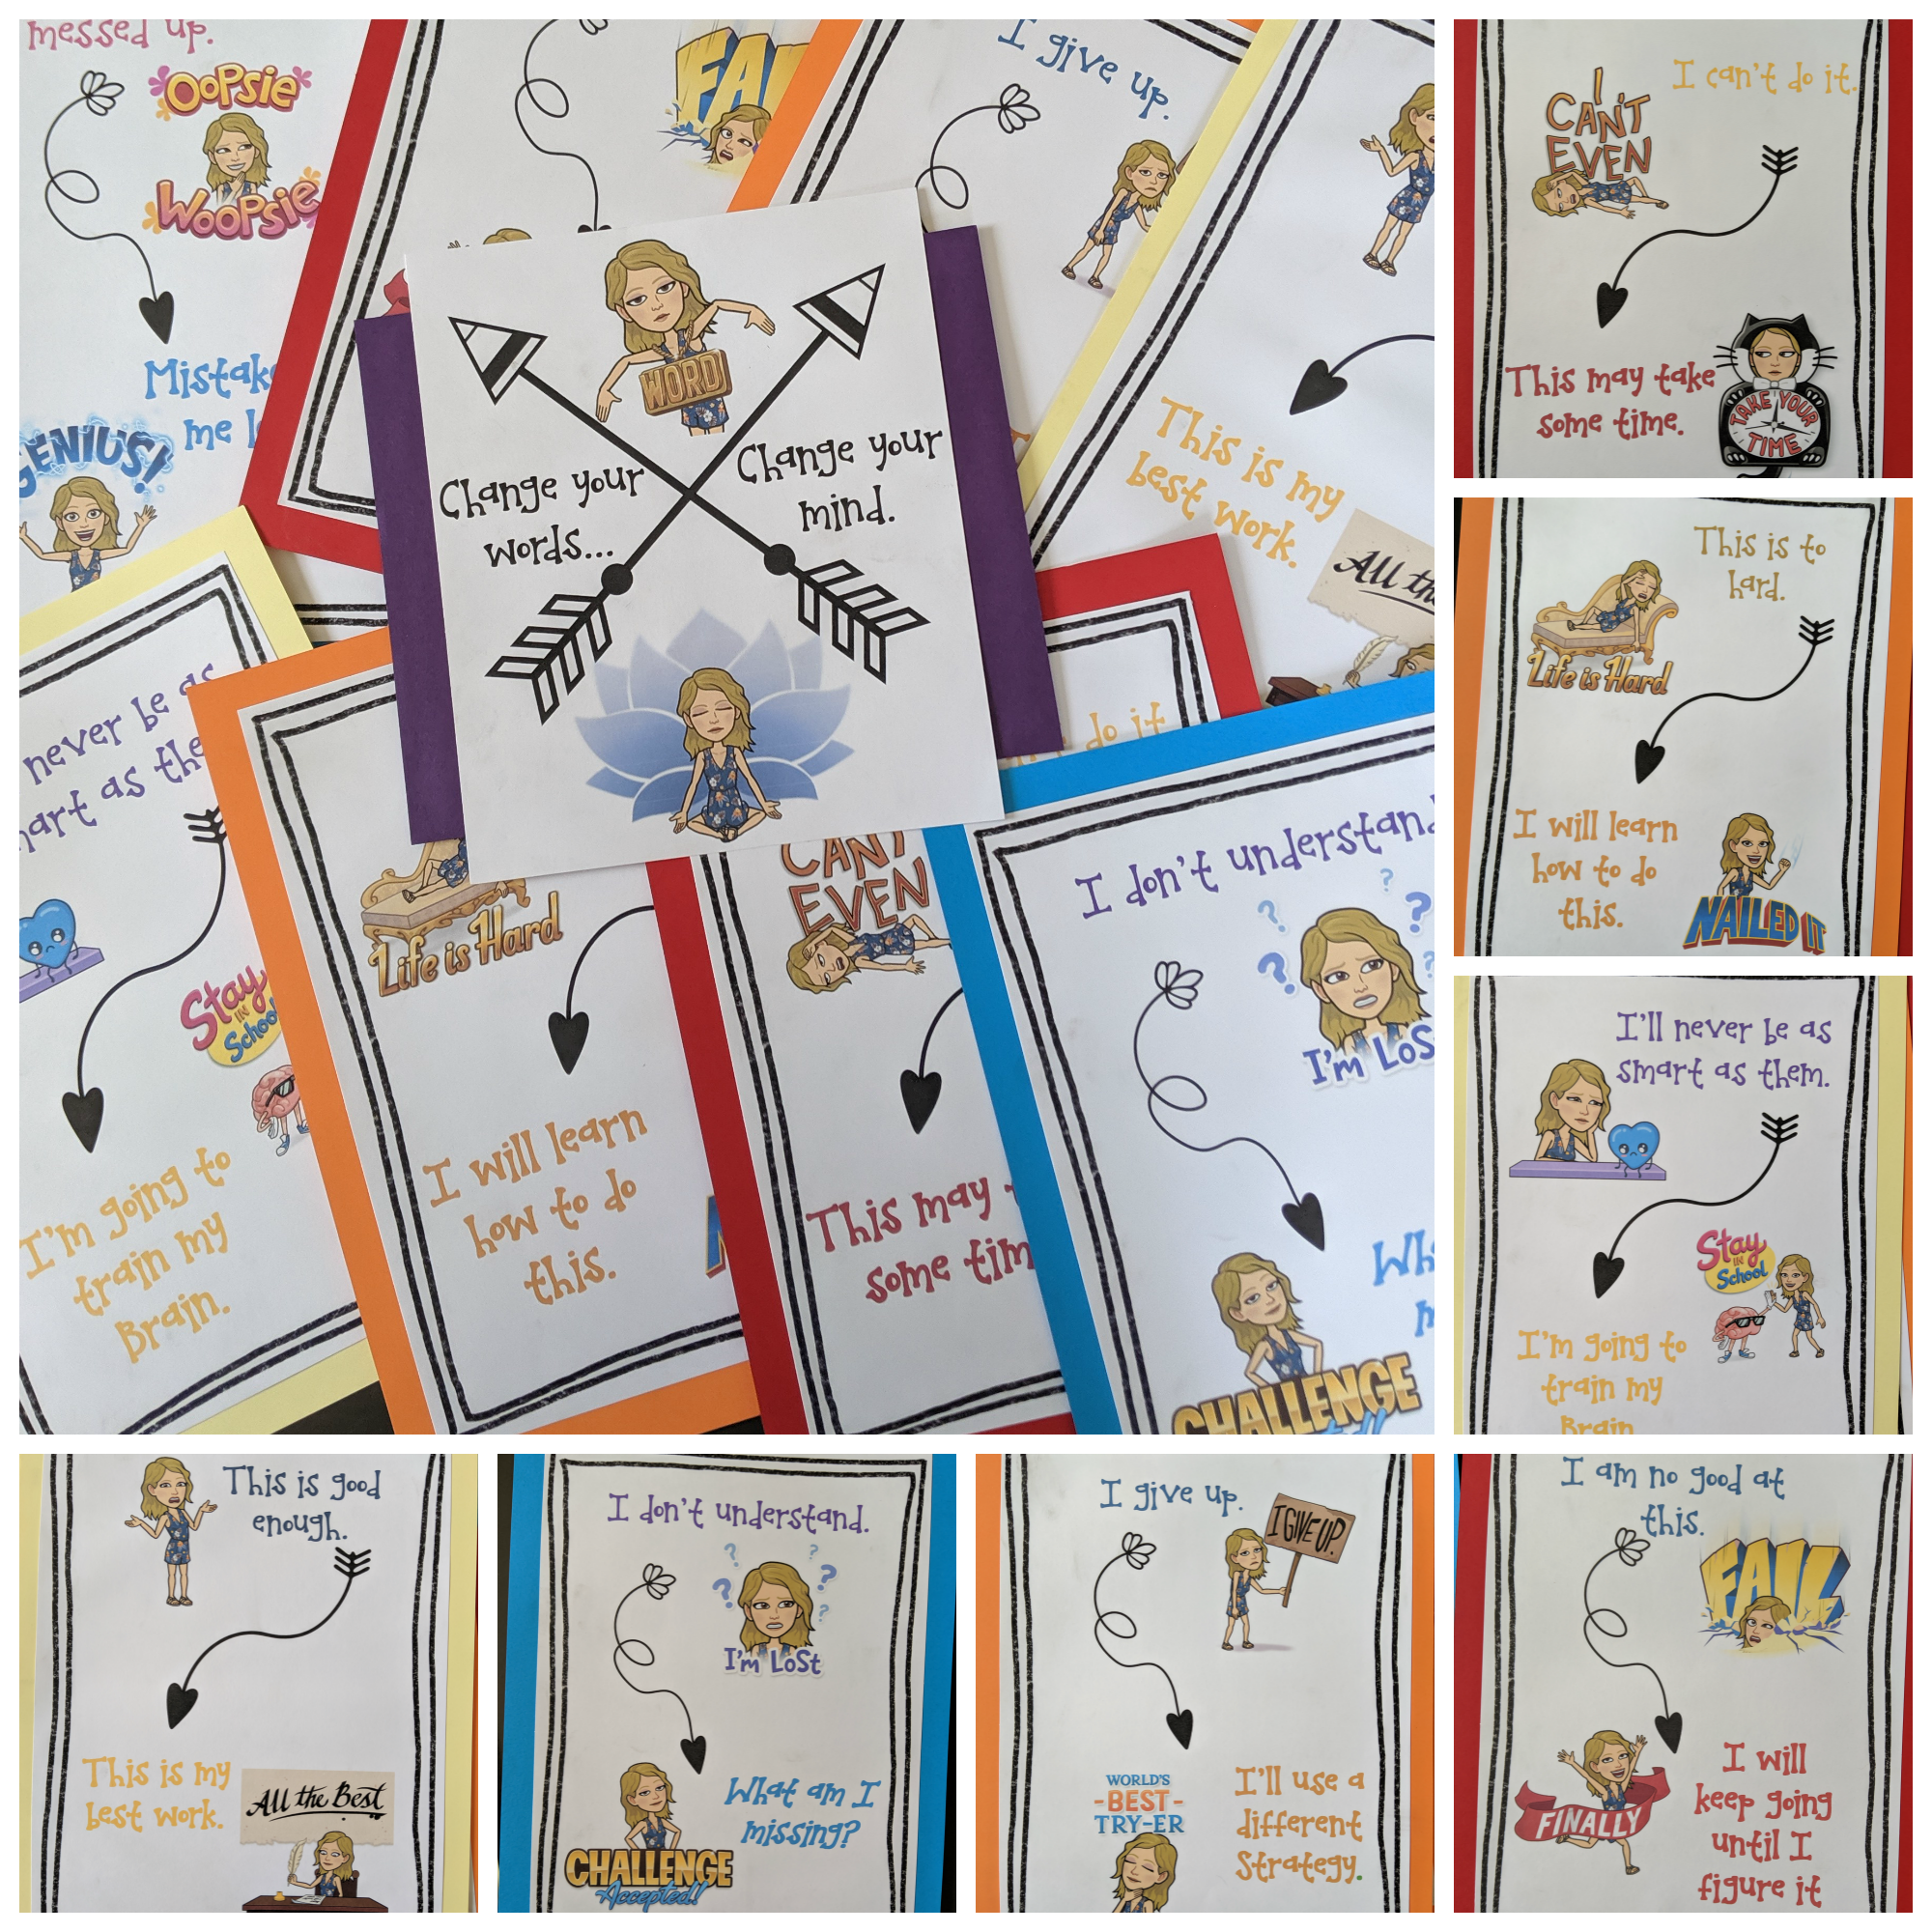 Personalized Growth Mindset Posters - I can't wait to get these into my classroom. I am hoping I will have some space to post theses on cabinet doors. I am sure the perfect spot will hit me as soon as I get into my room!